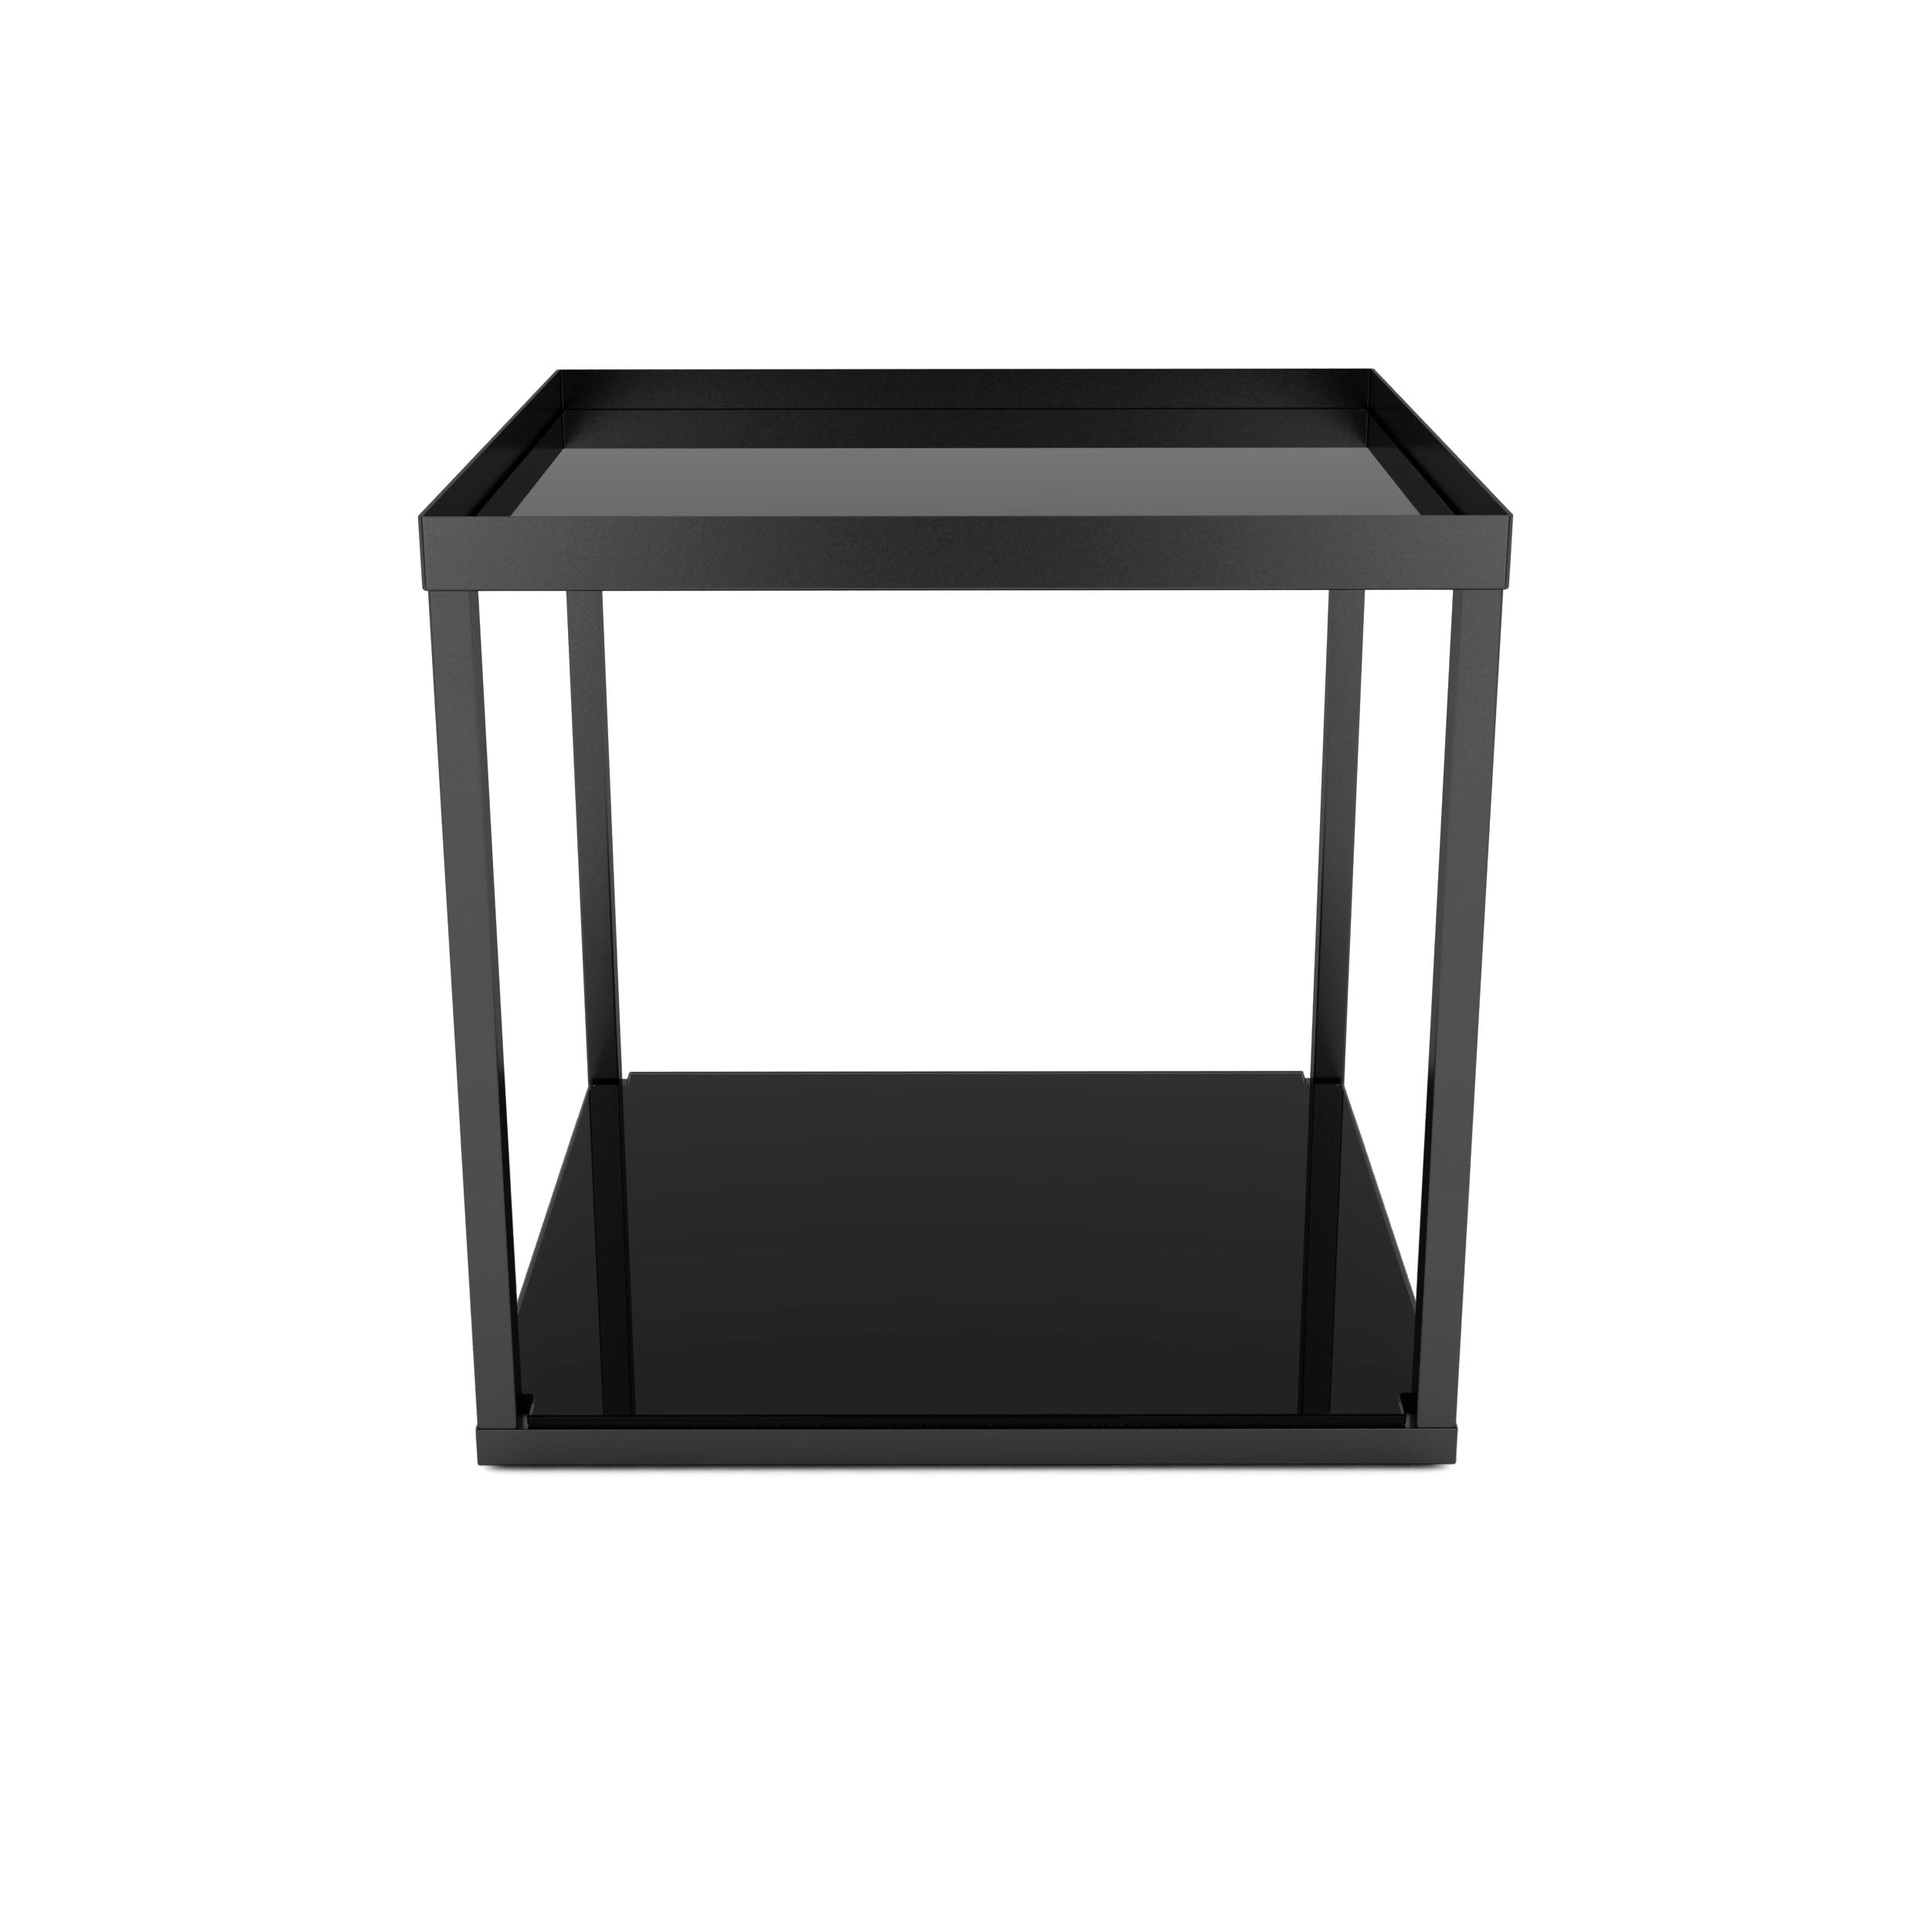 Urb SPACE Metal Modular Side Table   Free Shipping Today   Overstock    16471829